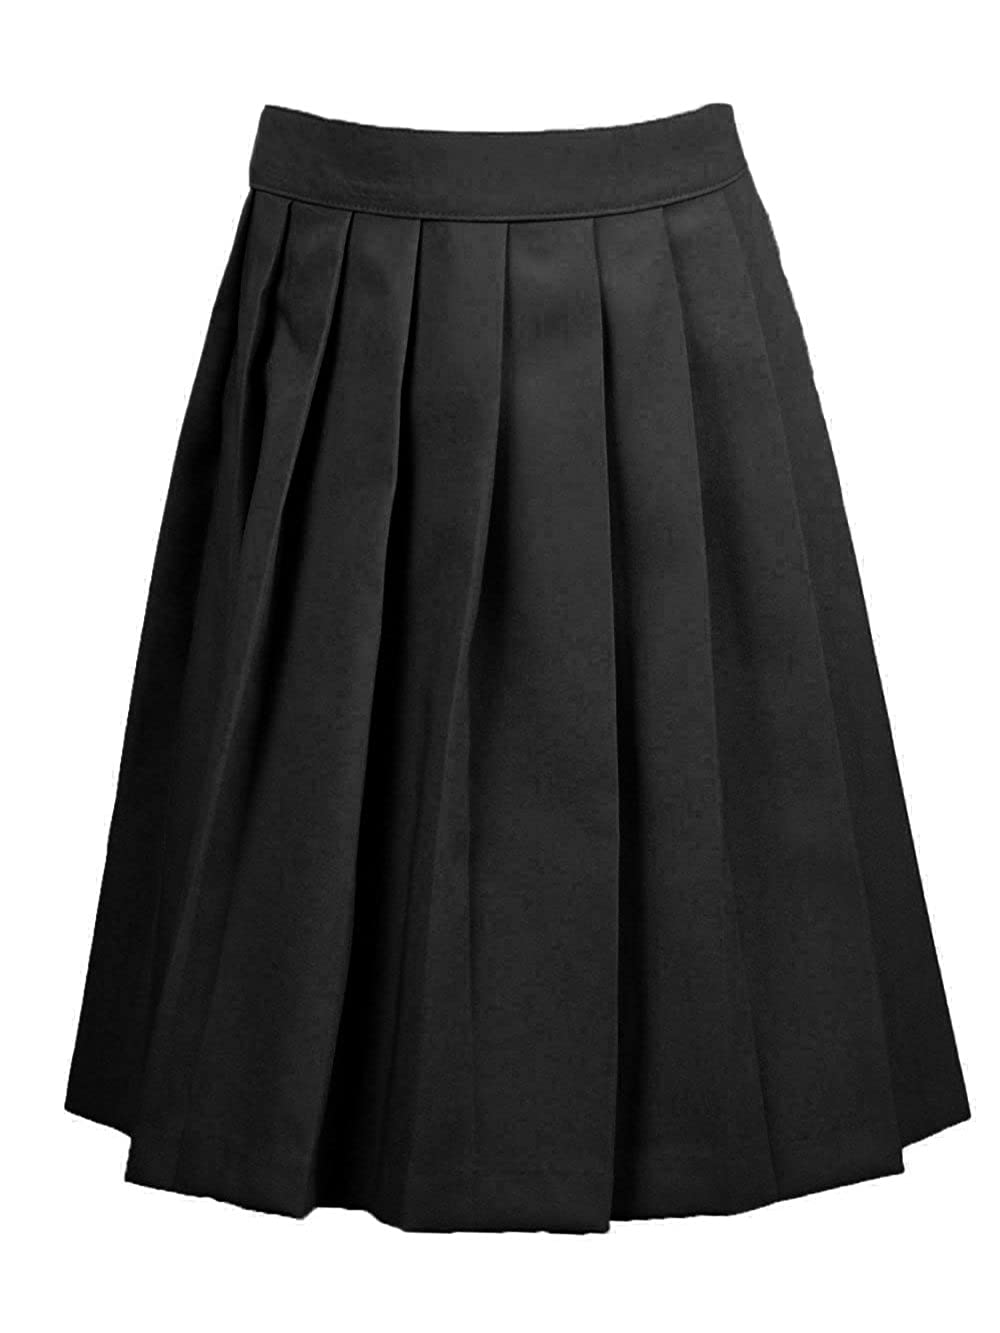 French Toast Big Girls' Pleated Skirt - black, 10